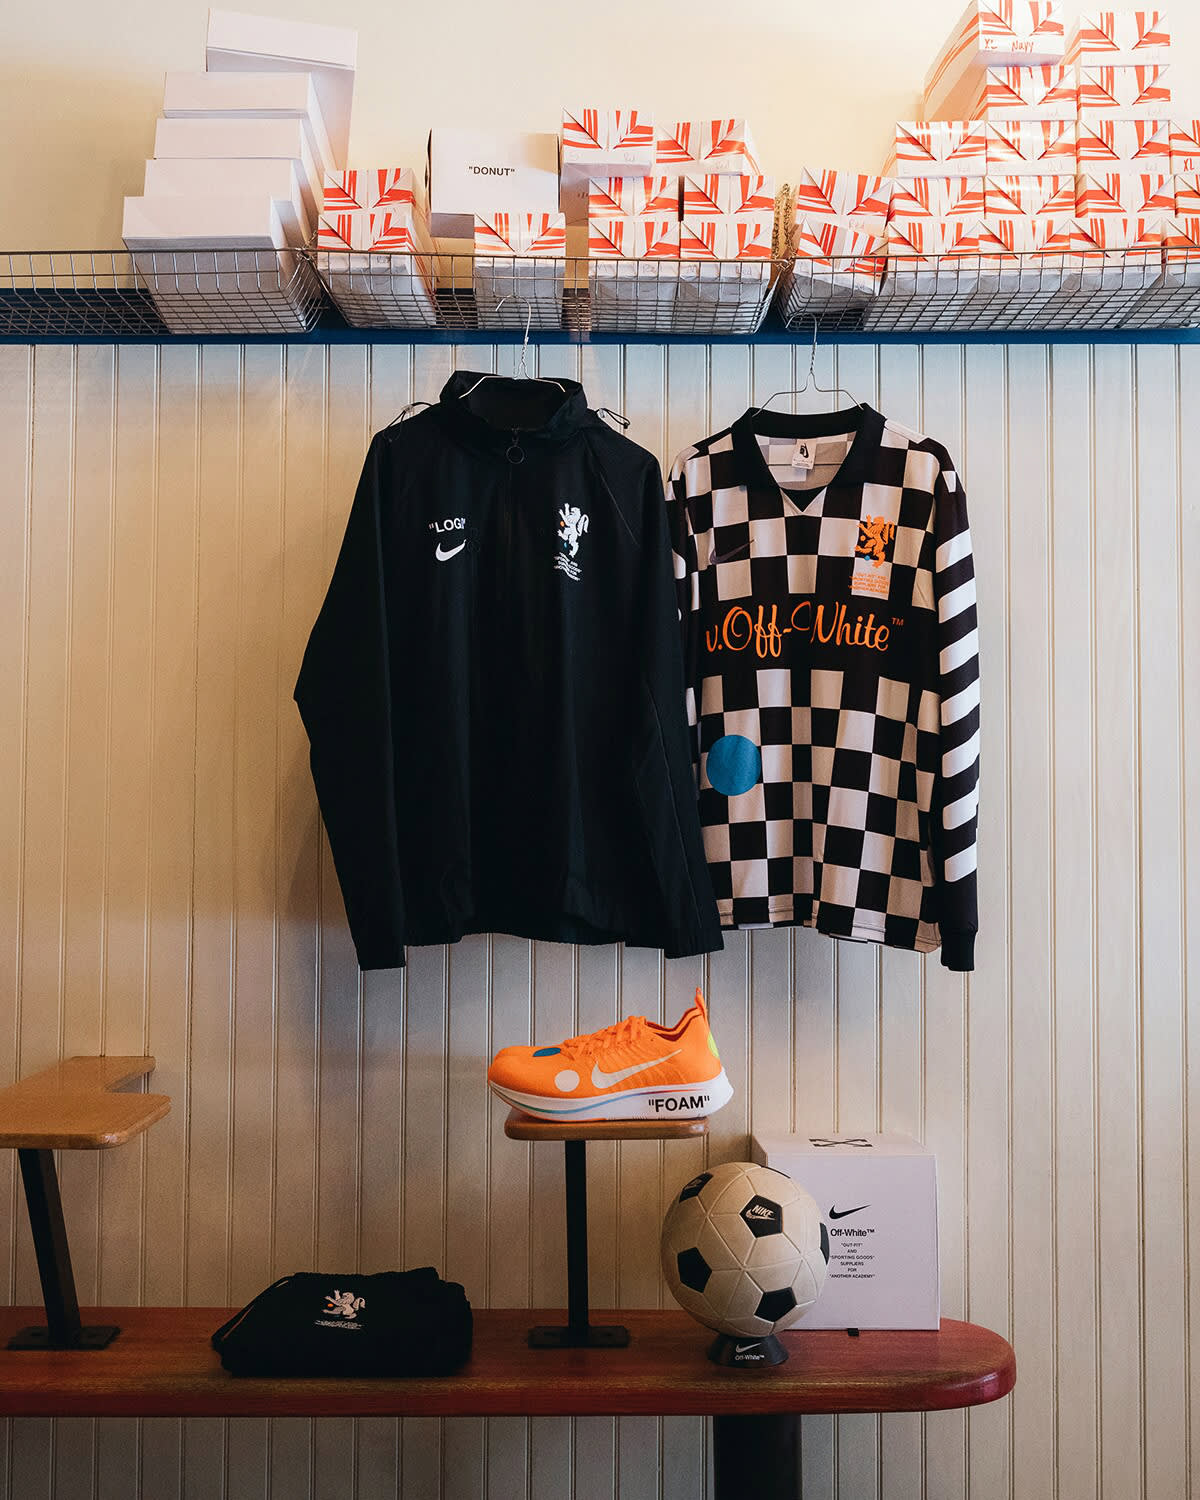 Ubiq x Federal Donuts Off-White x Nike Giveaway 2